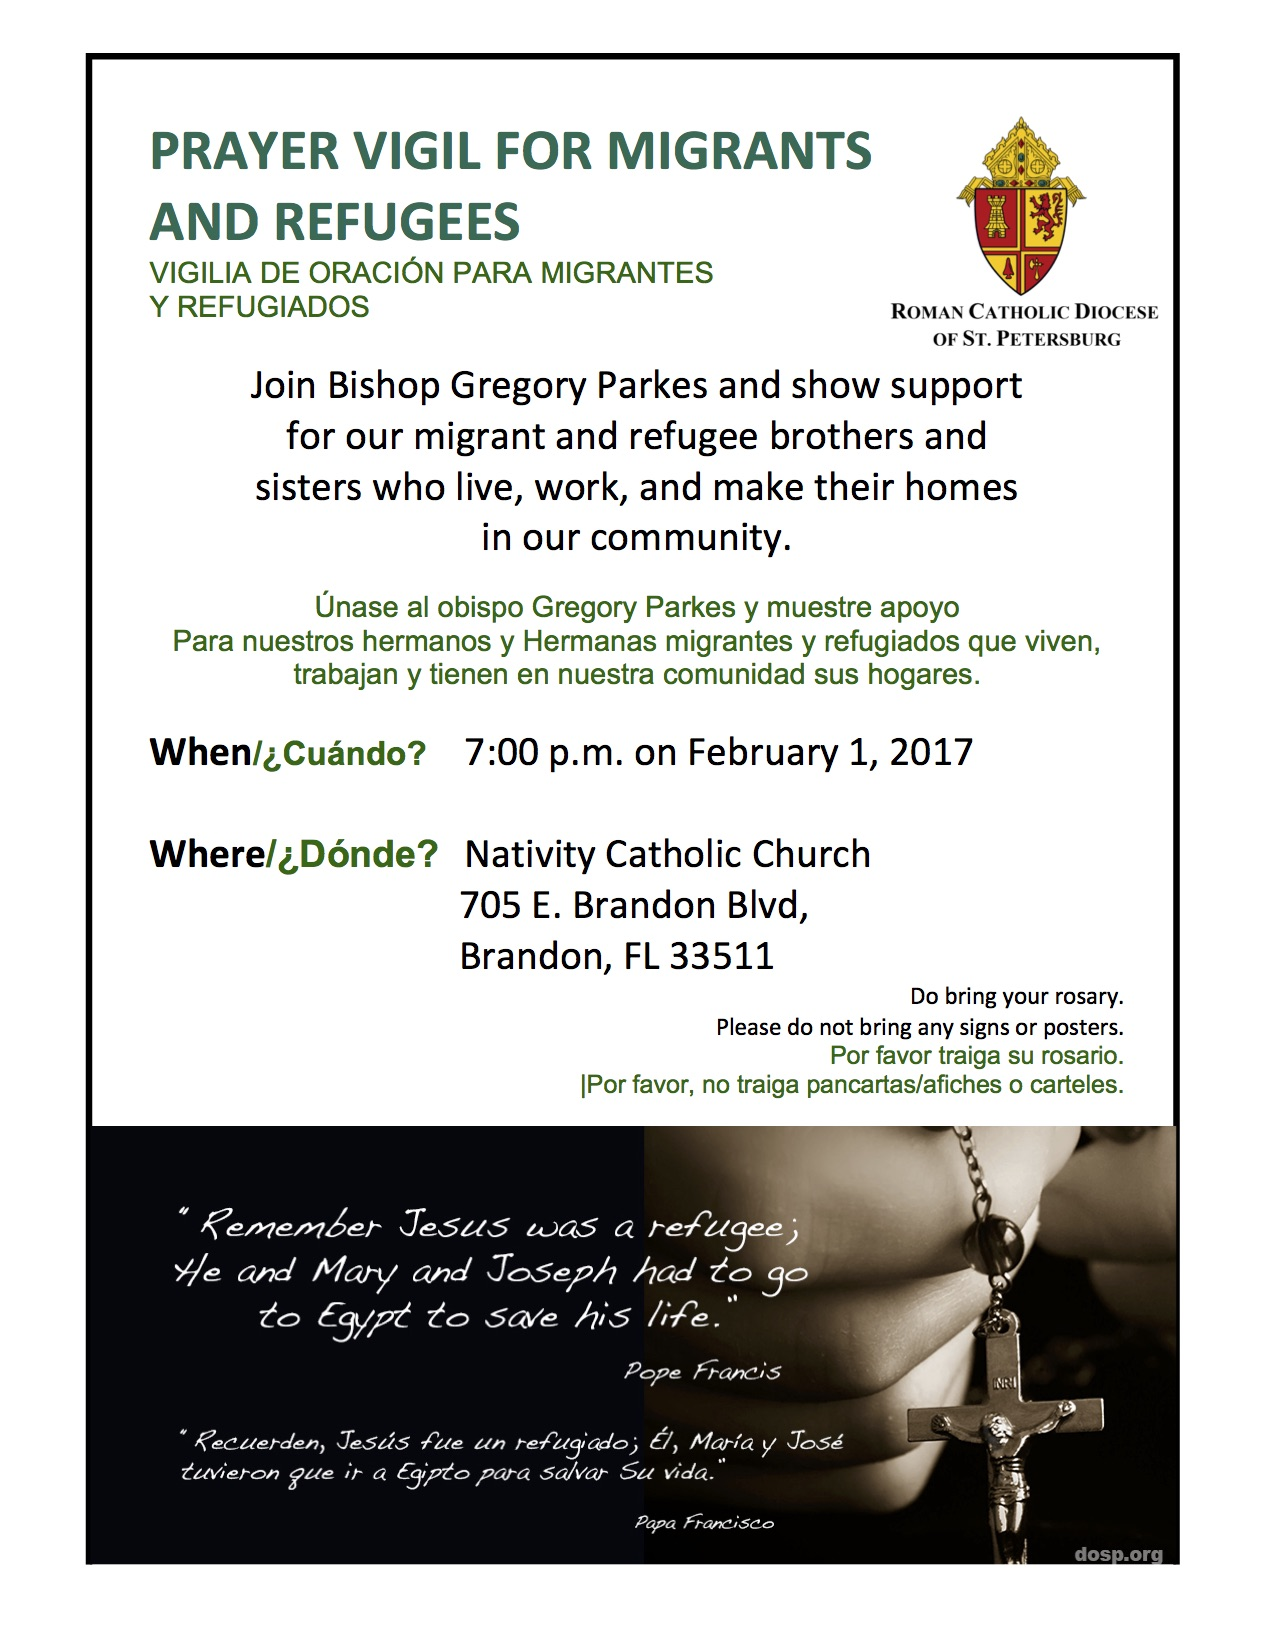 2017 Prayer Vigil for Migrants and Refugees Flyer